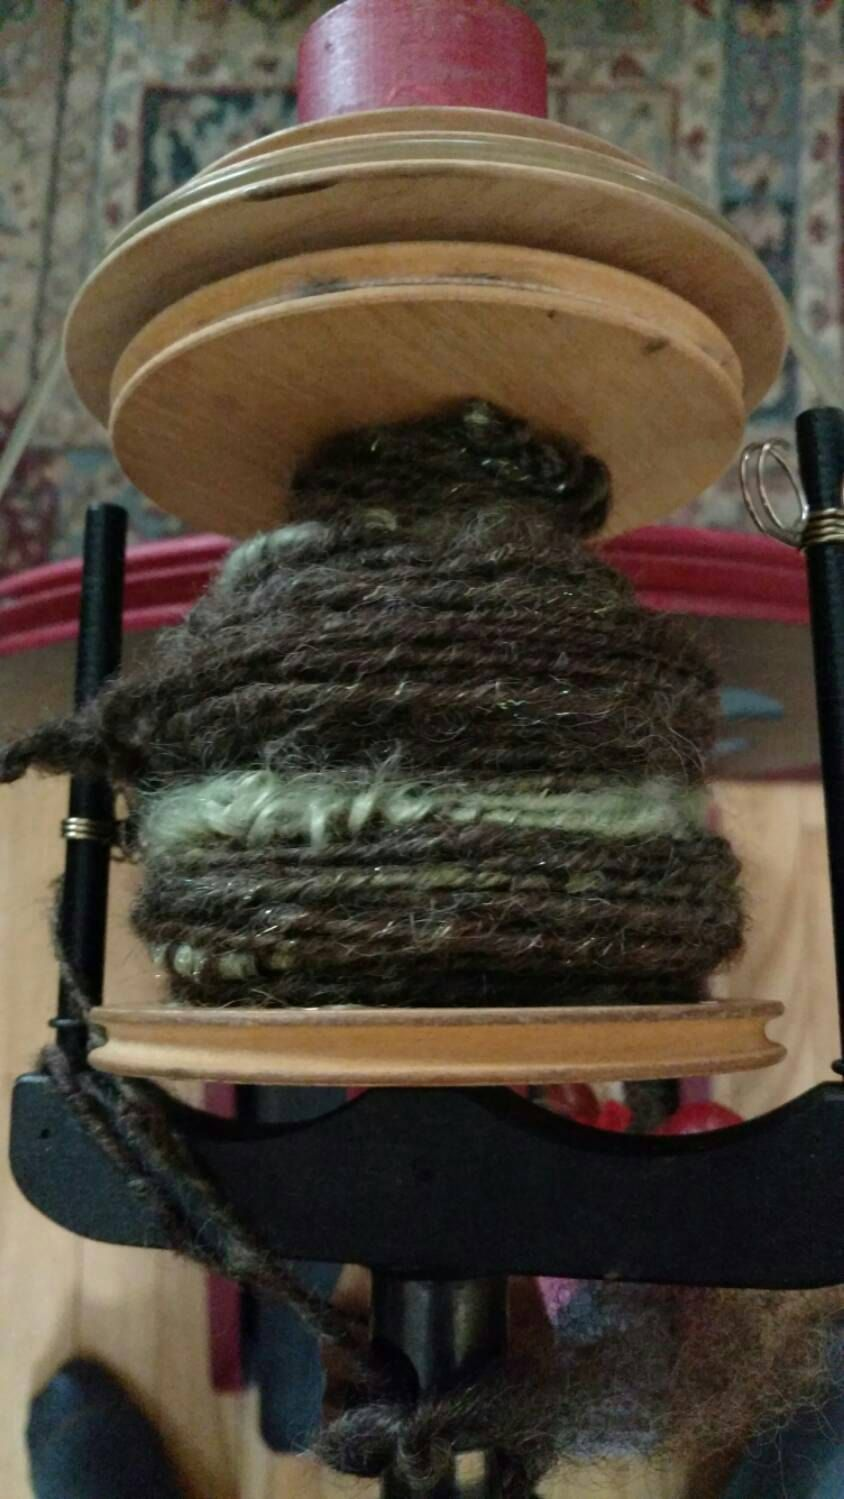 Mossy Branches is a fun chunky yarn I made with Border Leister, Wensleydale locks and pinches of gold, silver and green firestar and Angelina. I liked the batts I made so much I'm working on a second skein. Cosy, yet woodsy!